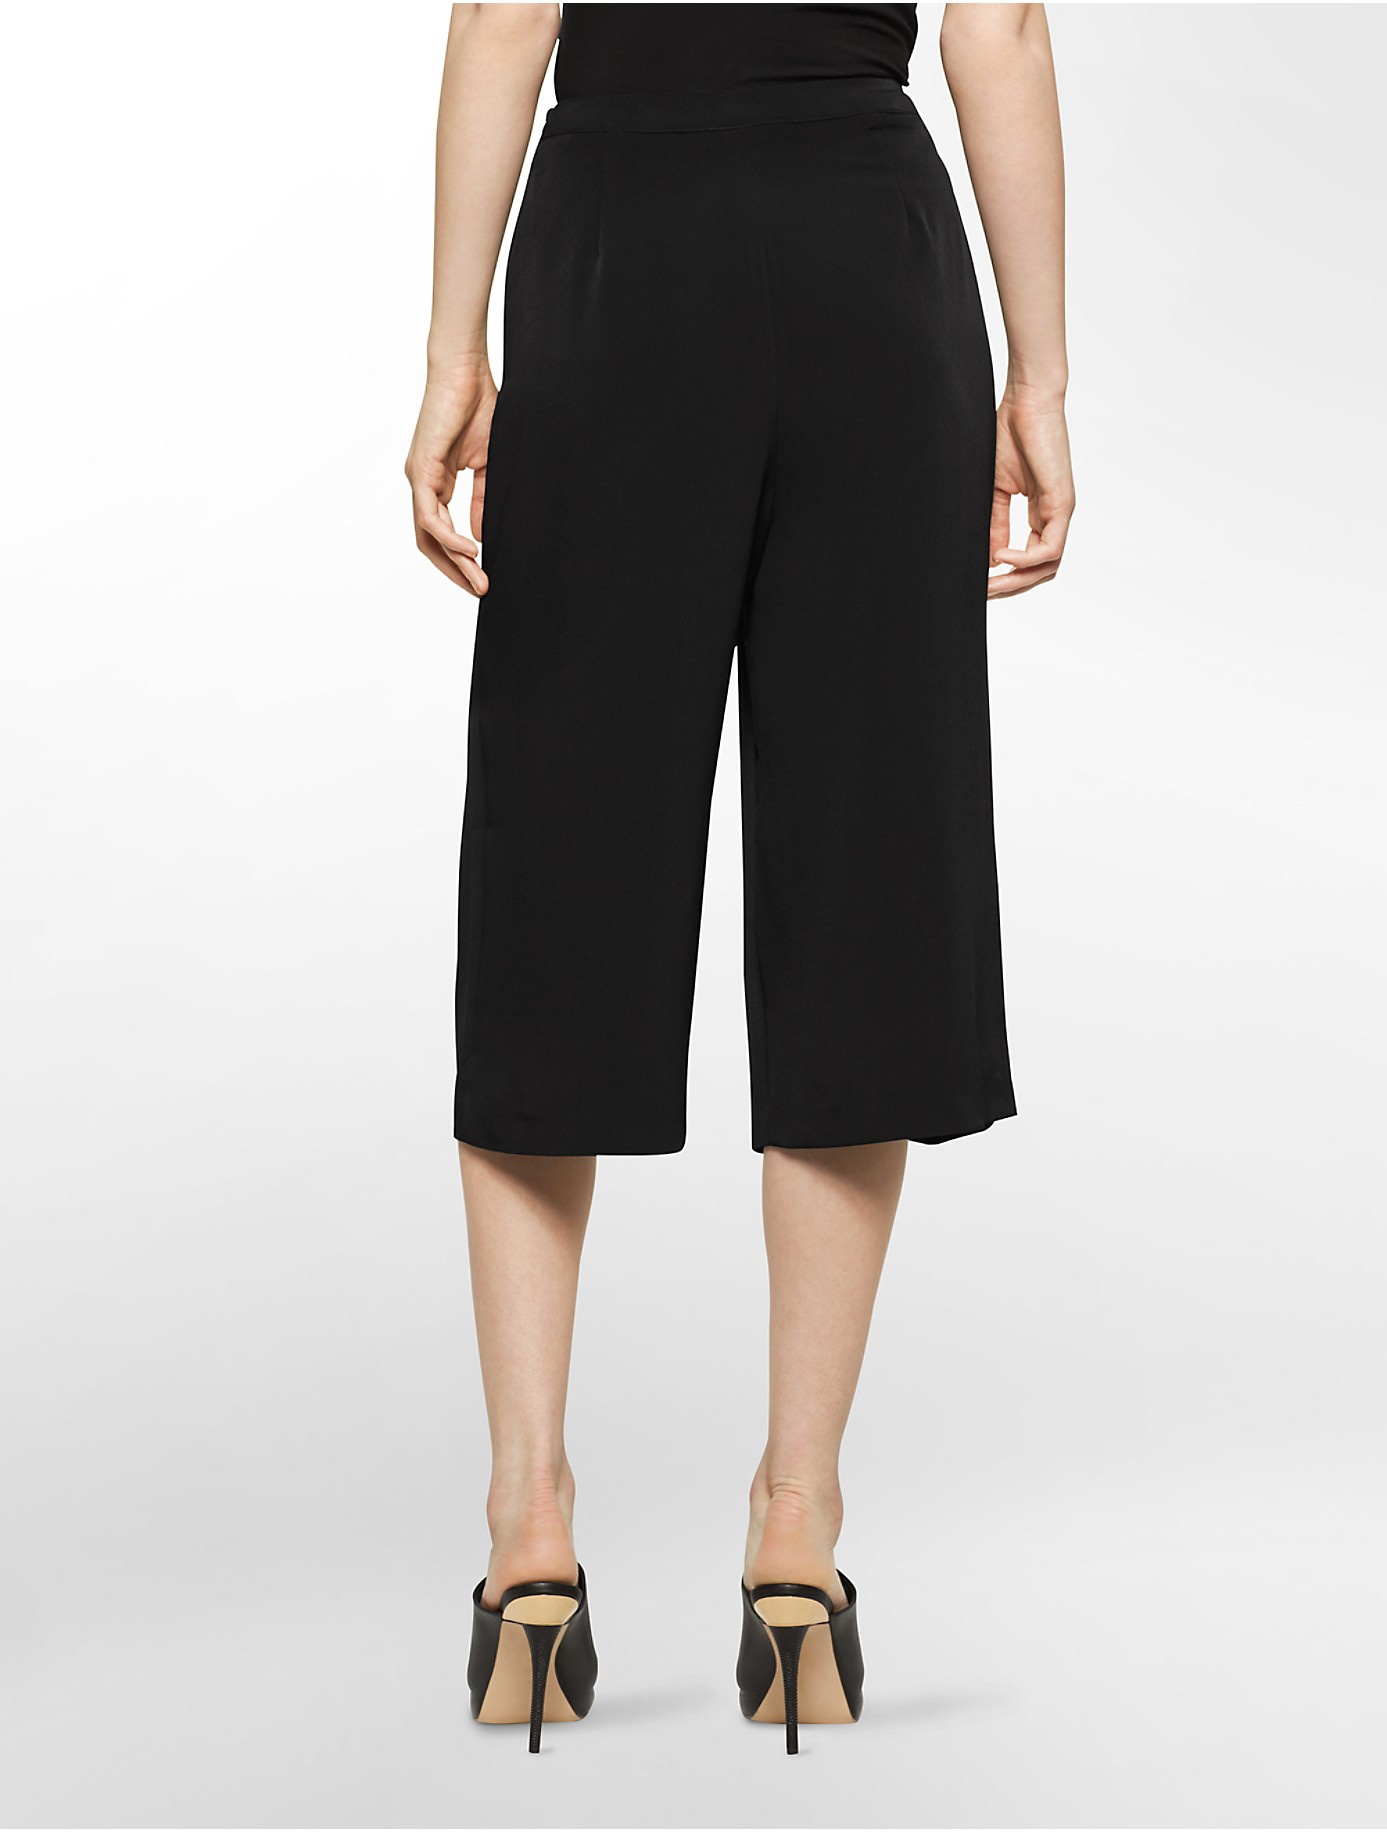 lyst calvin klein white label pleated front culotte pants in black. Black Bedroom Furniture Sets. Home Design Ideas